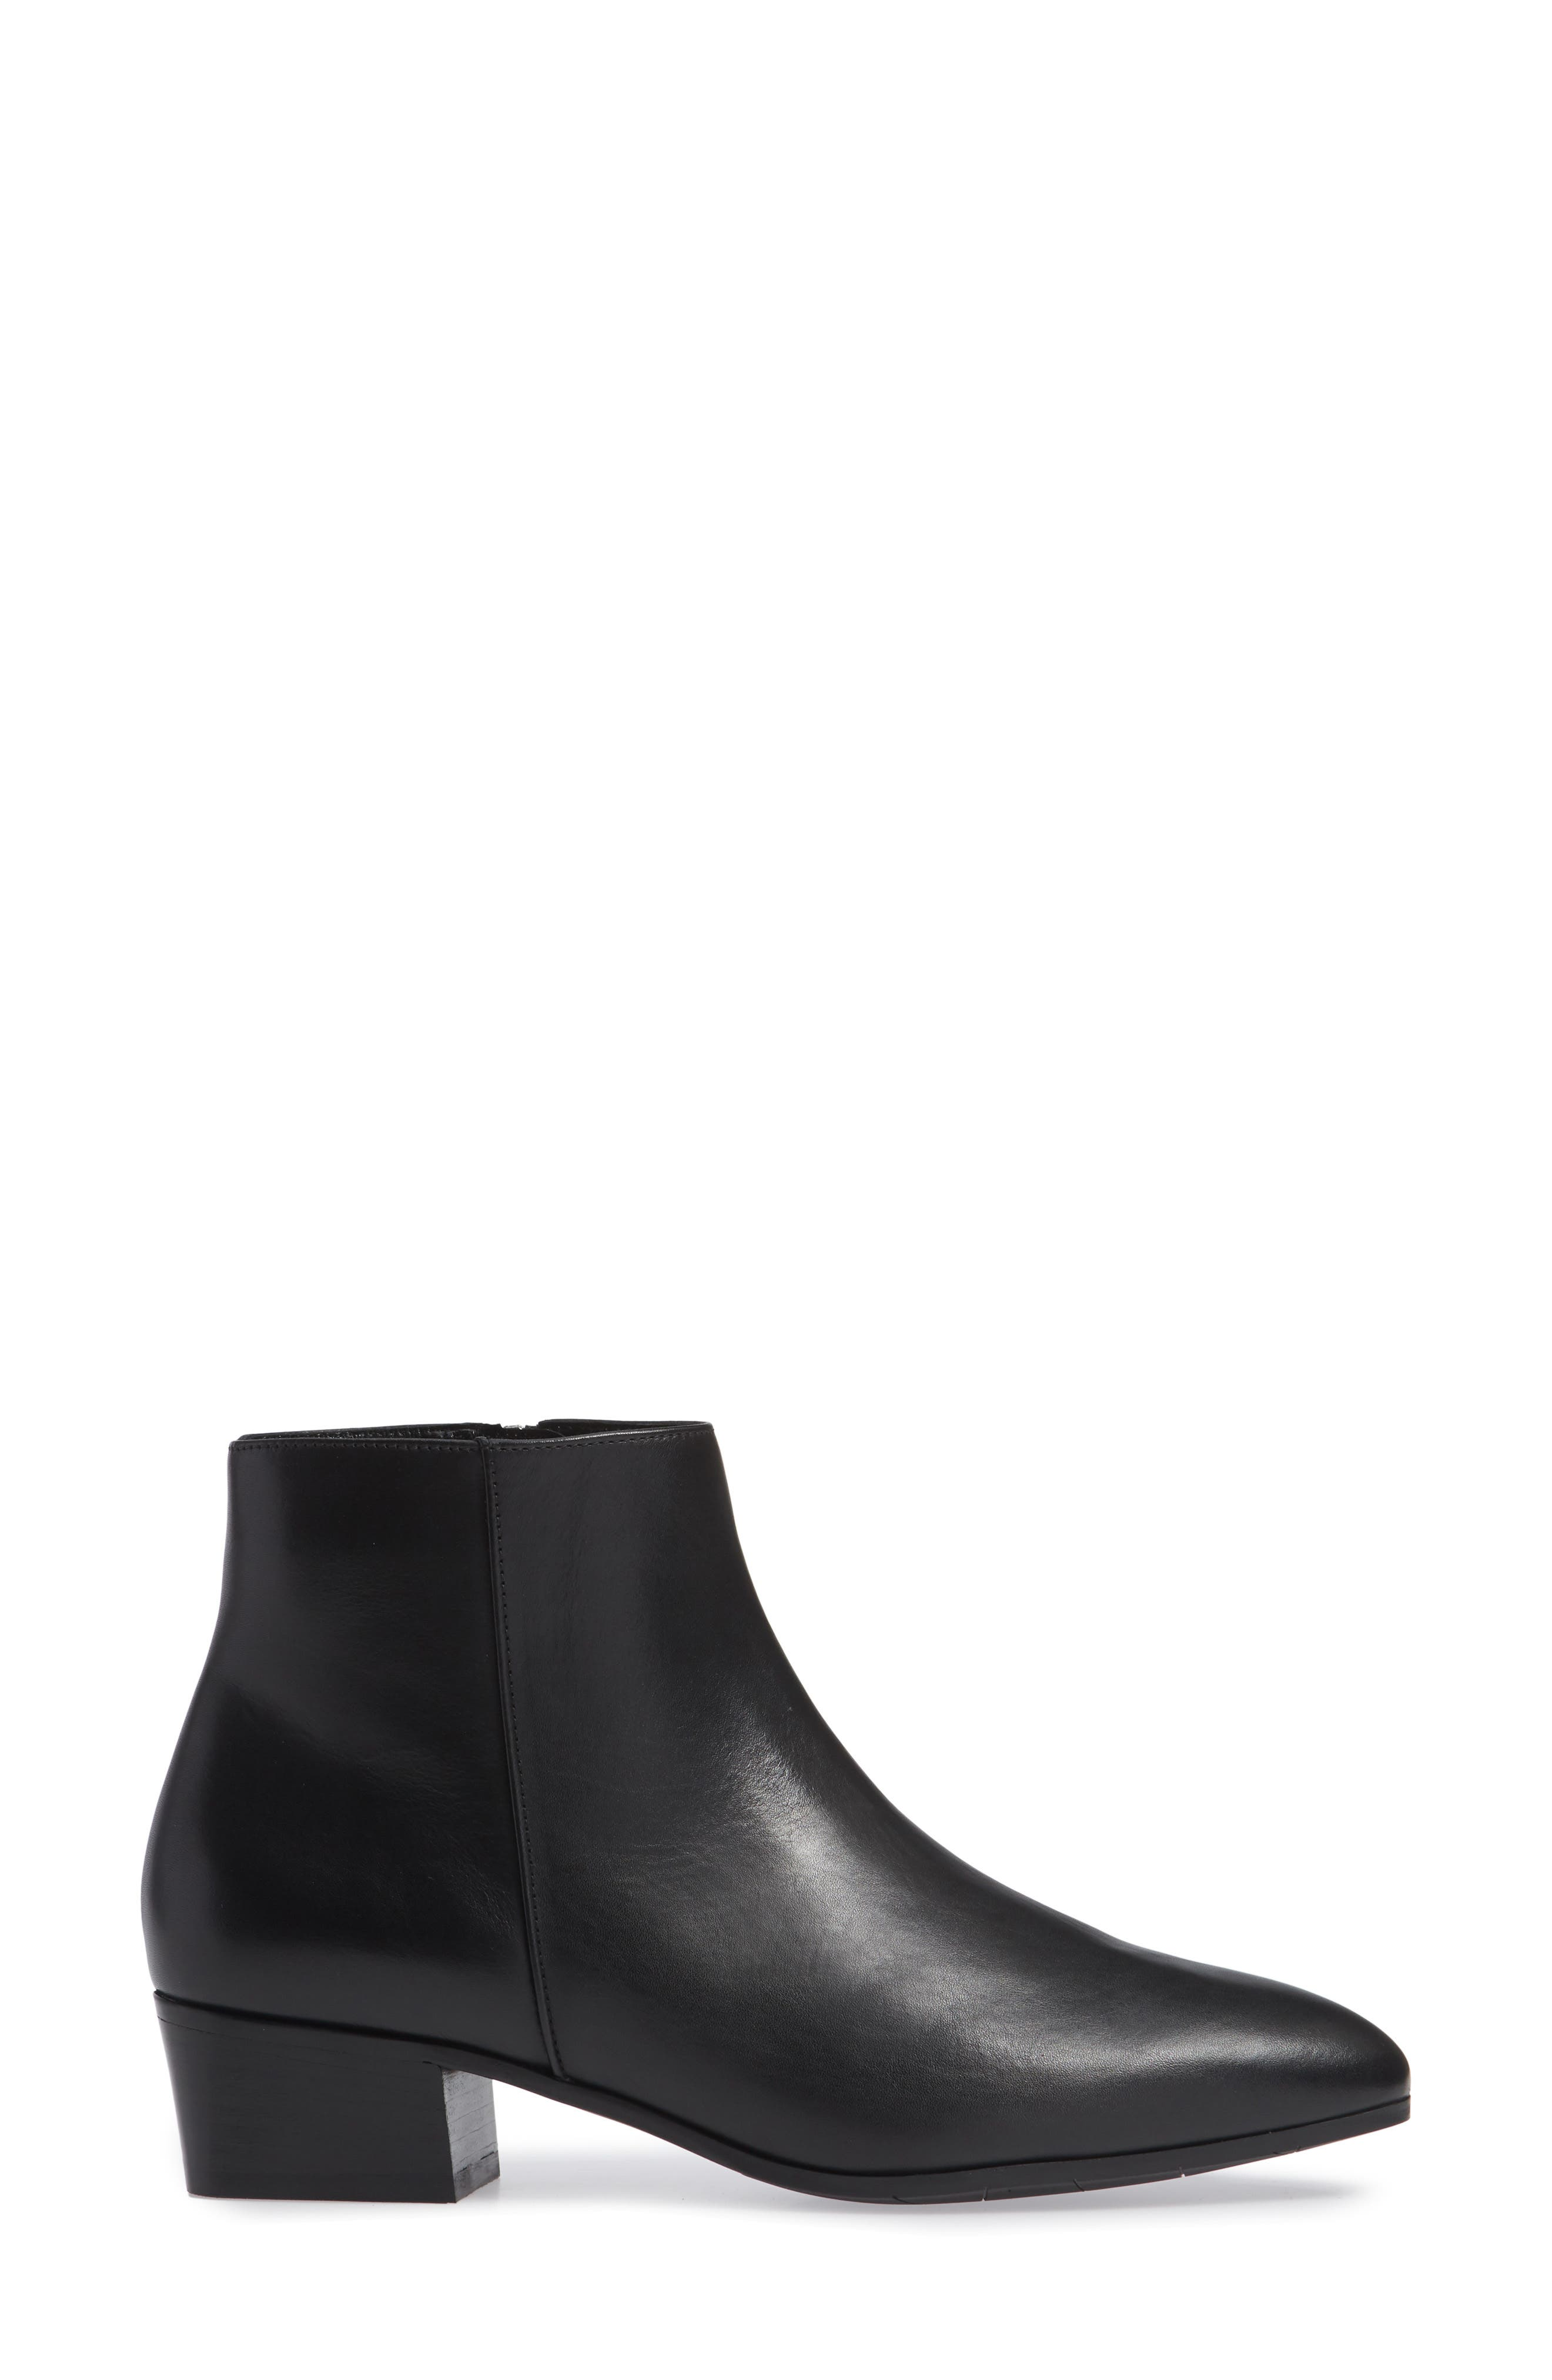 Fuoco Weatherproof Bootie,                             Alternate thumbnail 3, color,                             BLACK LEATHER